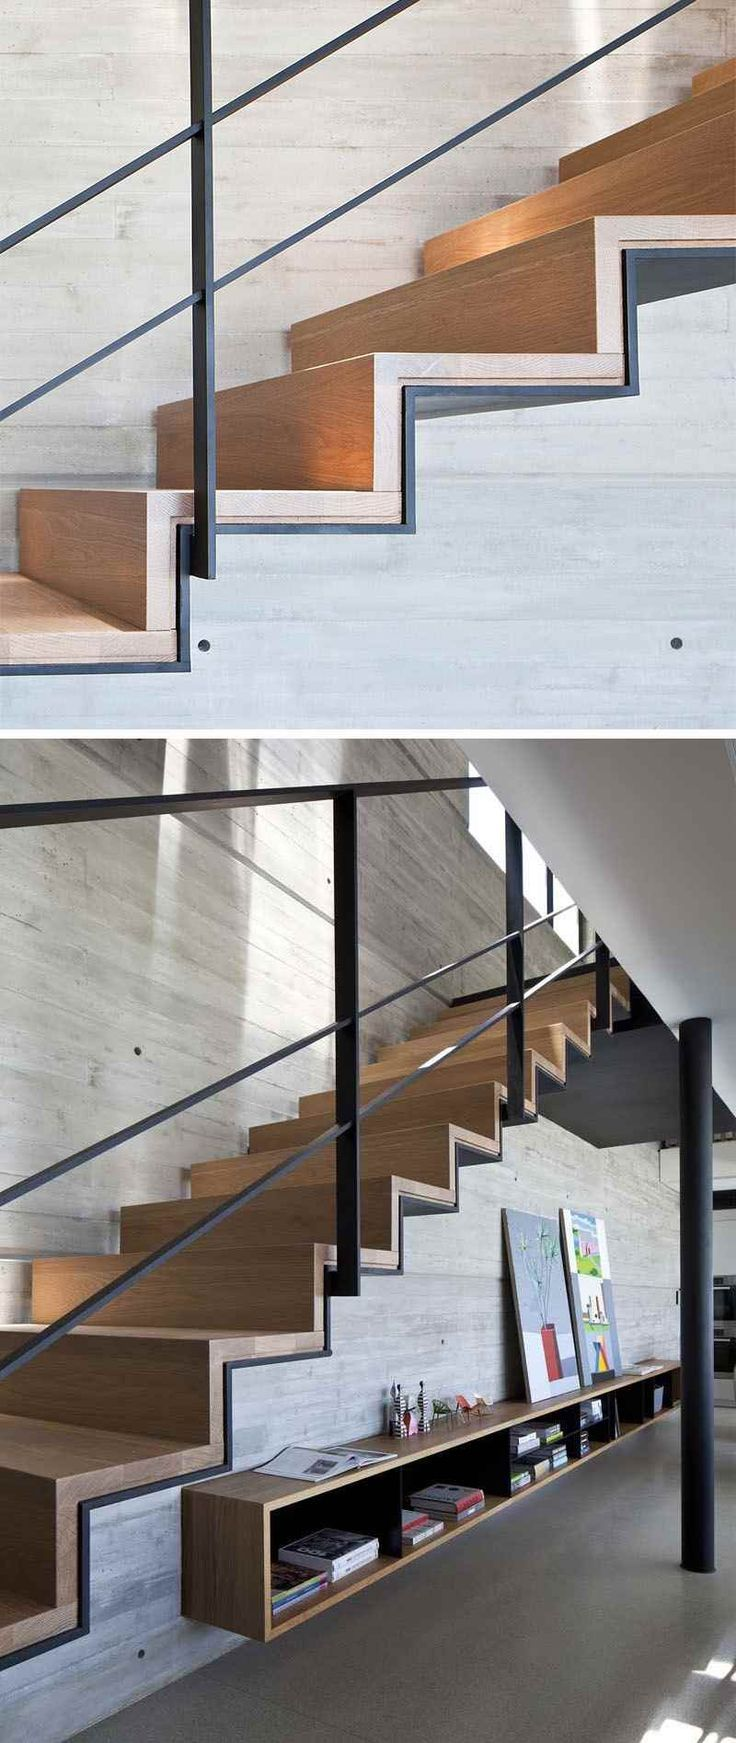 Bien connu 147 best Escalier images on Pinterest | Stairs, Accessories and  IT87